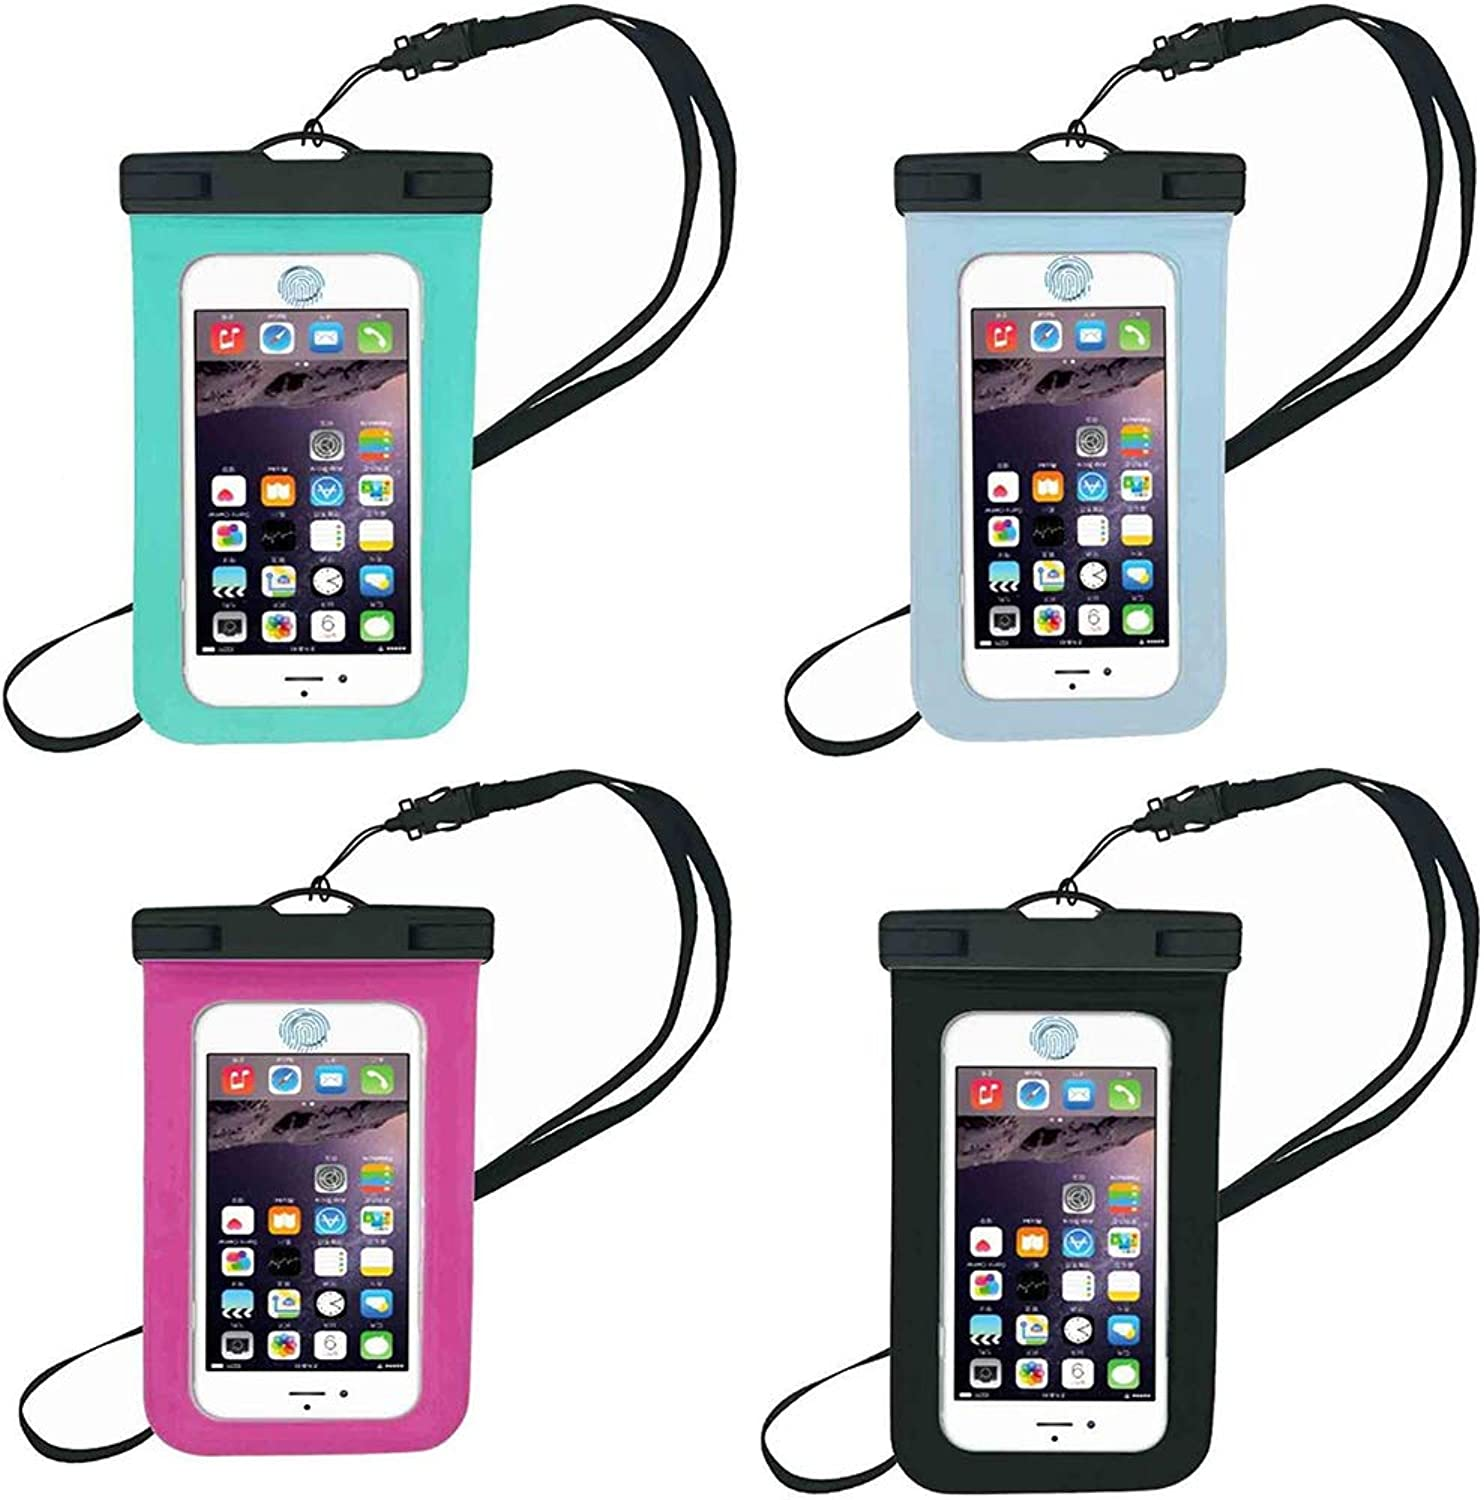 FourPiece Set Waterproof Pouch Cellphone Dry Bag Case Universal Design Makes Waterproof Case Bag Compatible with All Touch Phones Super